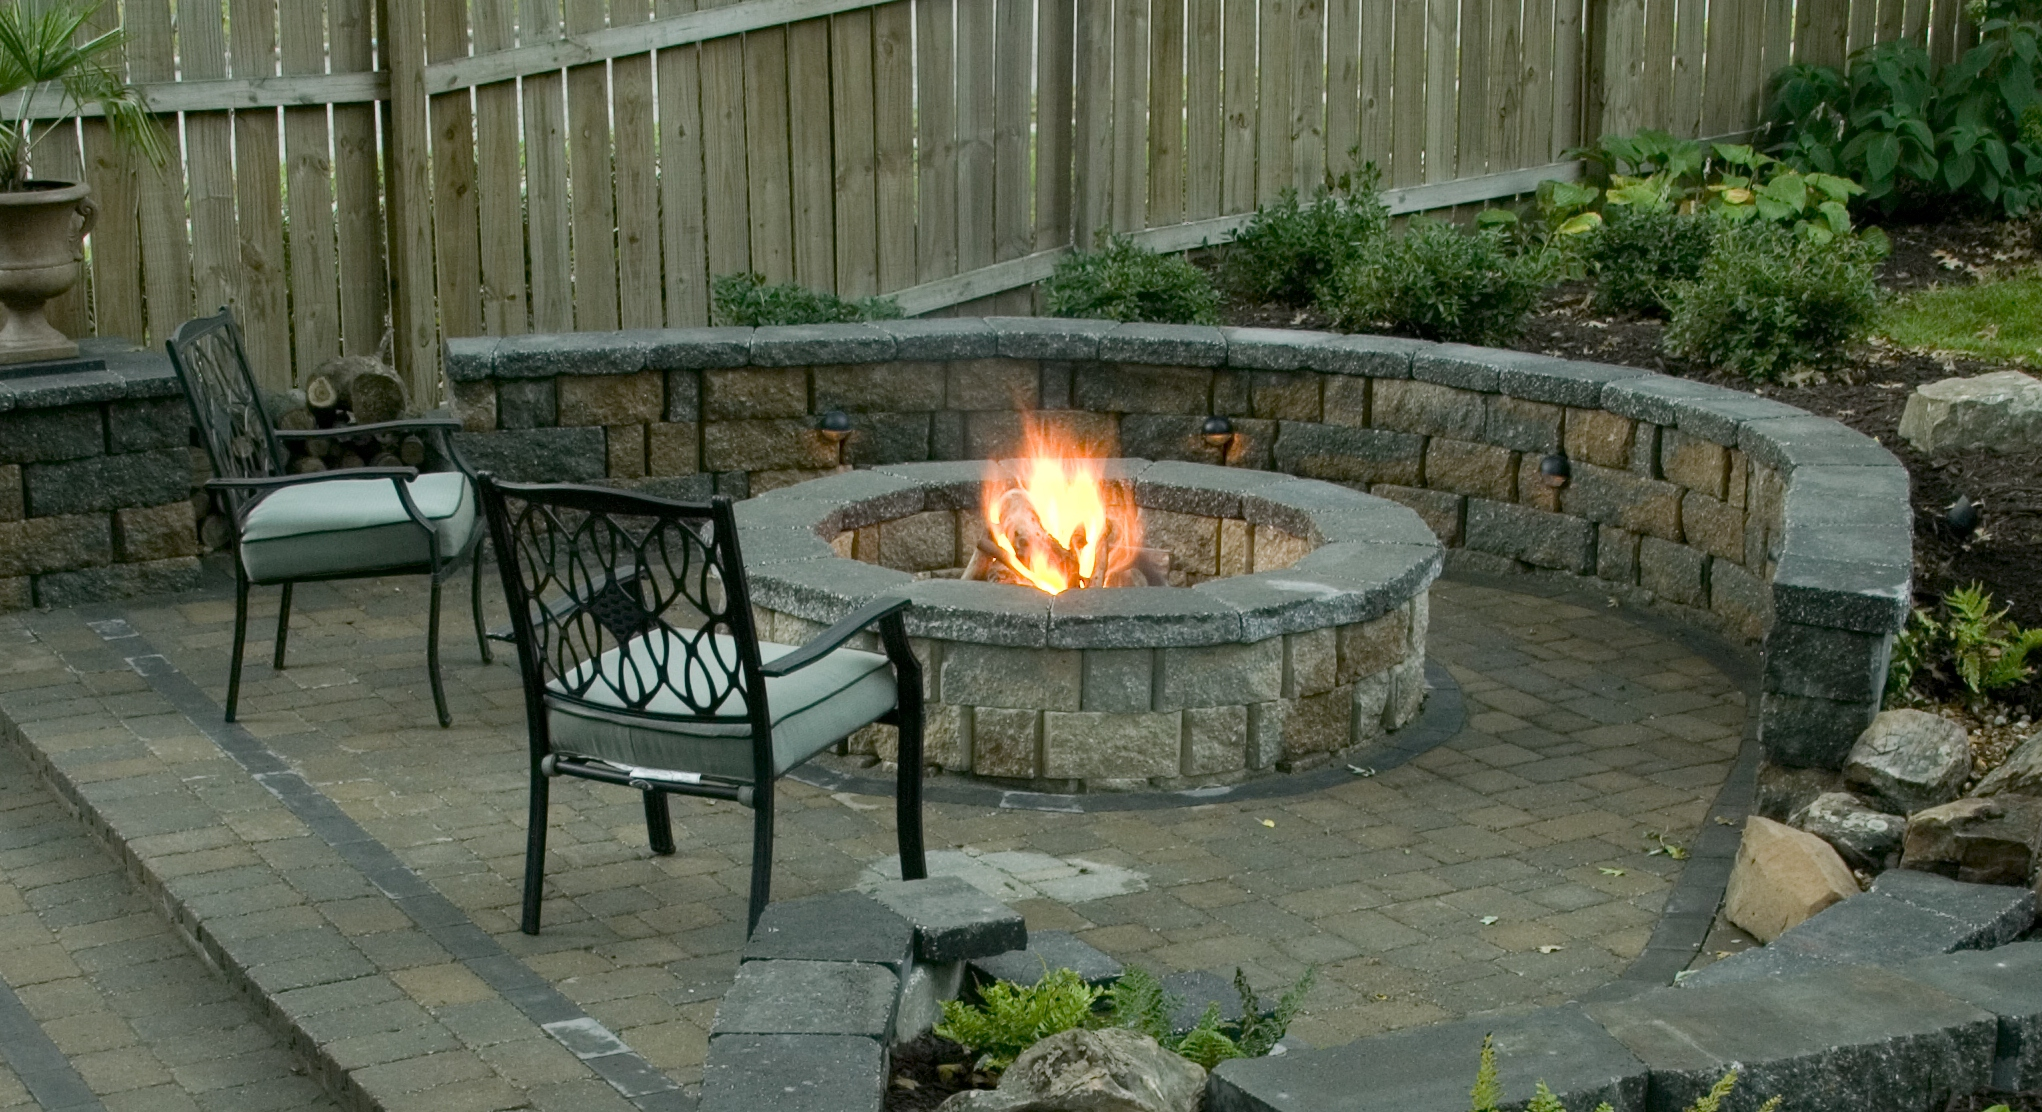 Garden Design With Outdoor Firepit Firering Or Fireplace With How To Plant Bamboo